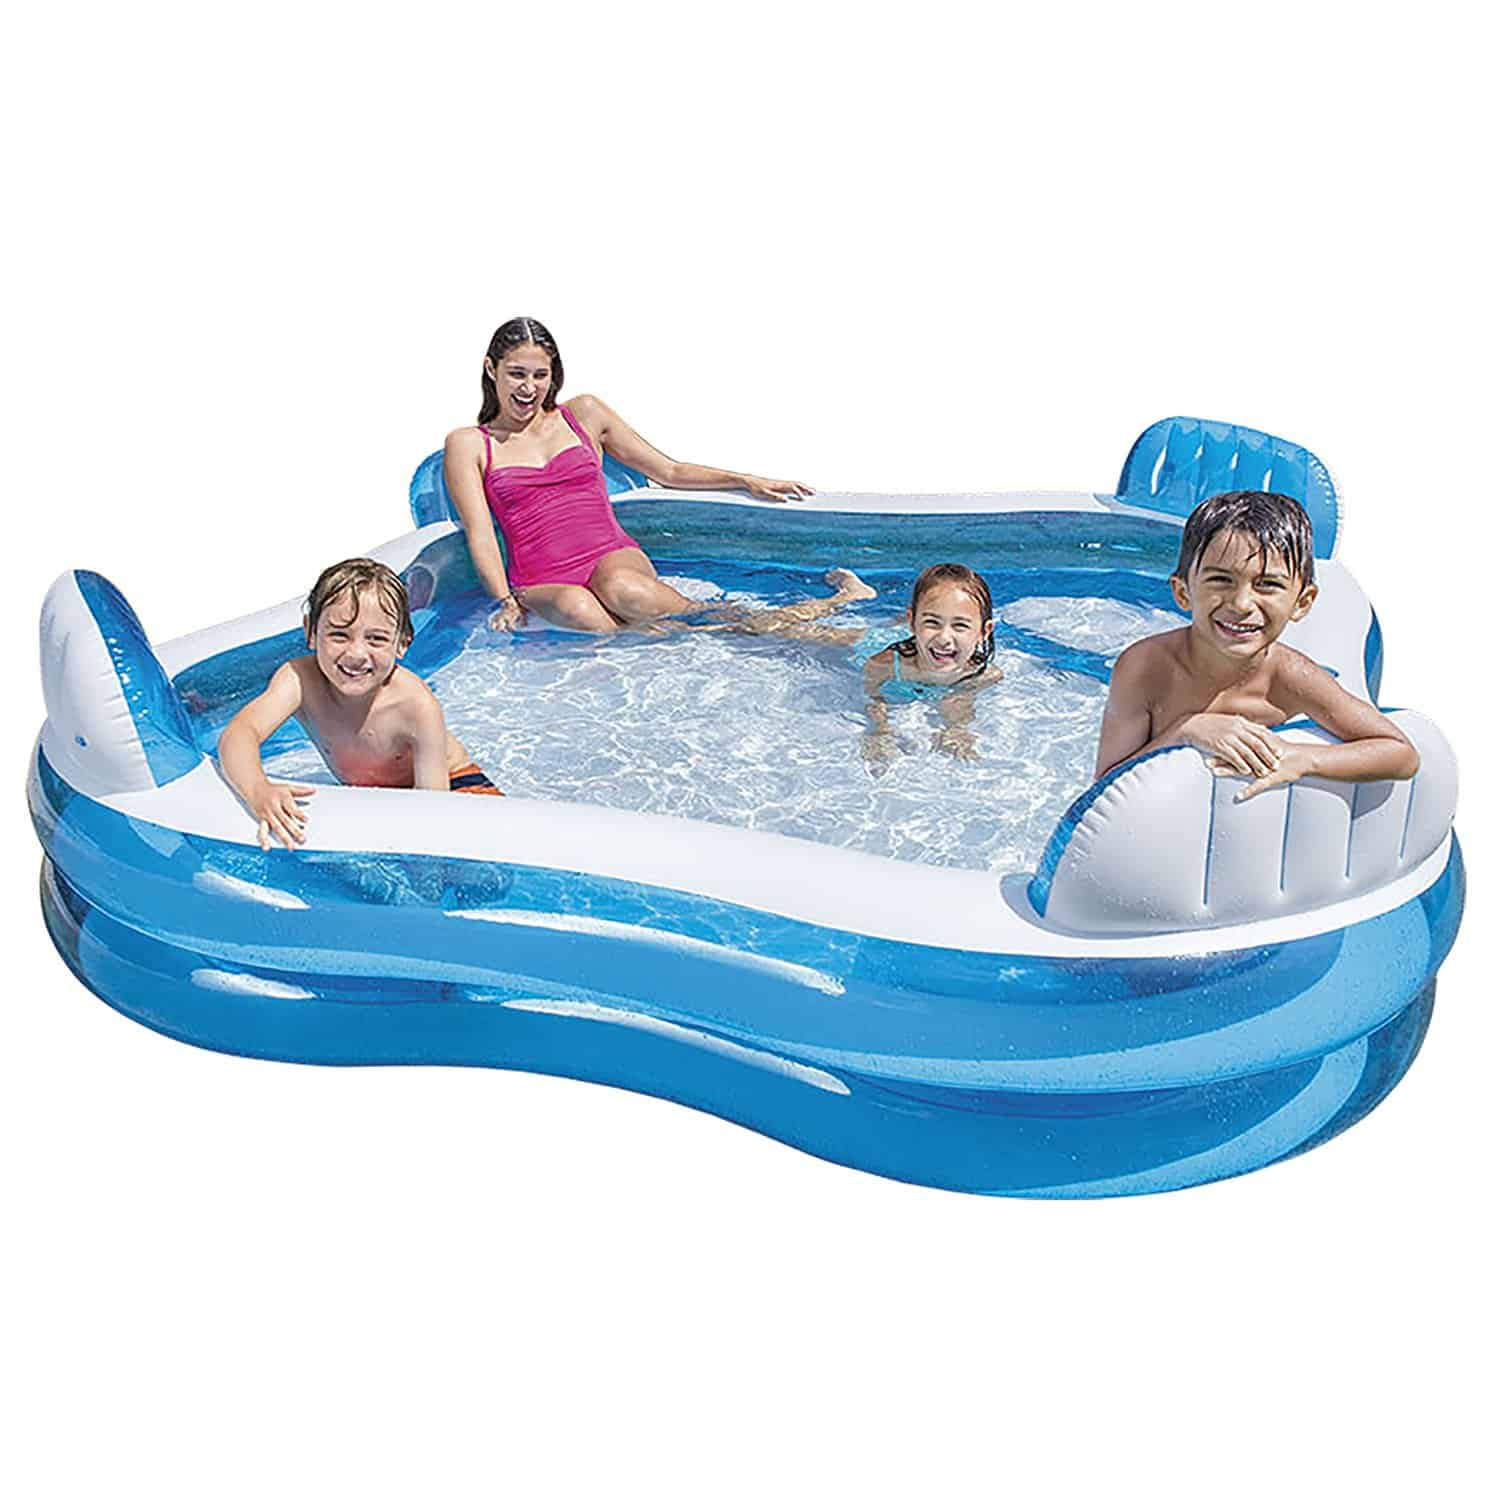 Best family inflatable pool with seats enjoy the summer yorkshire wonders for Intex swim centre family lounge pool cover